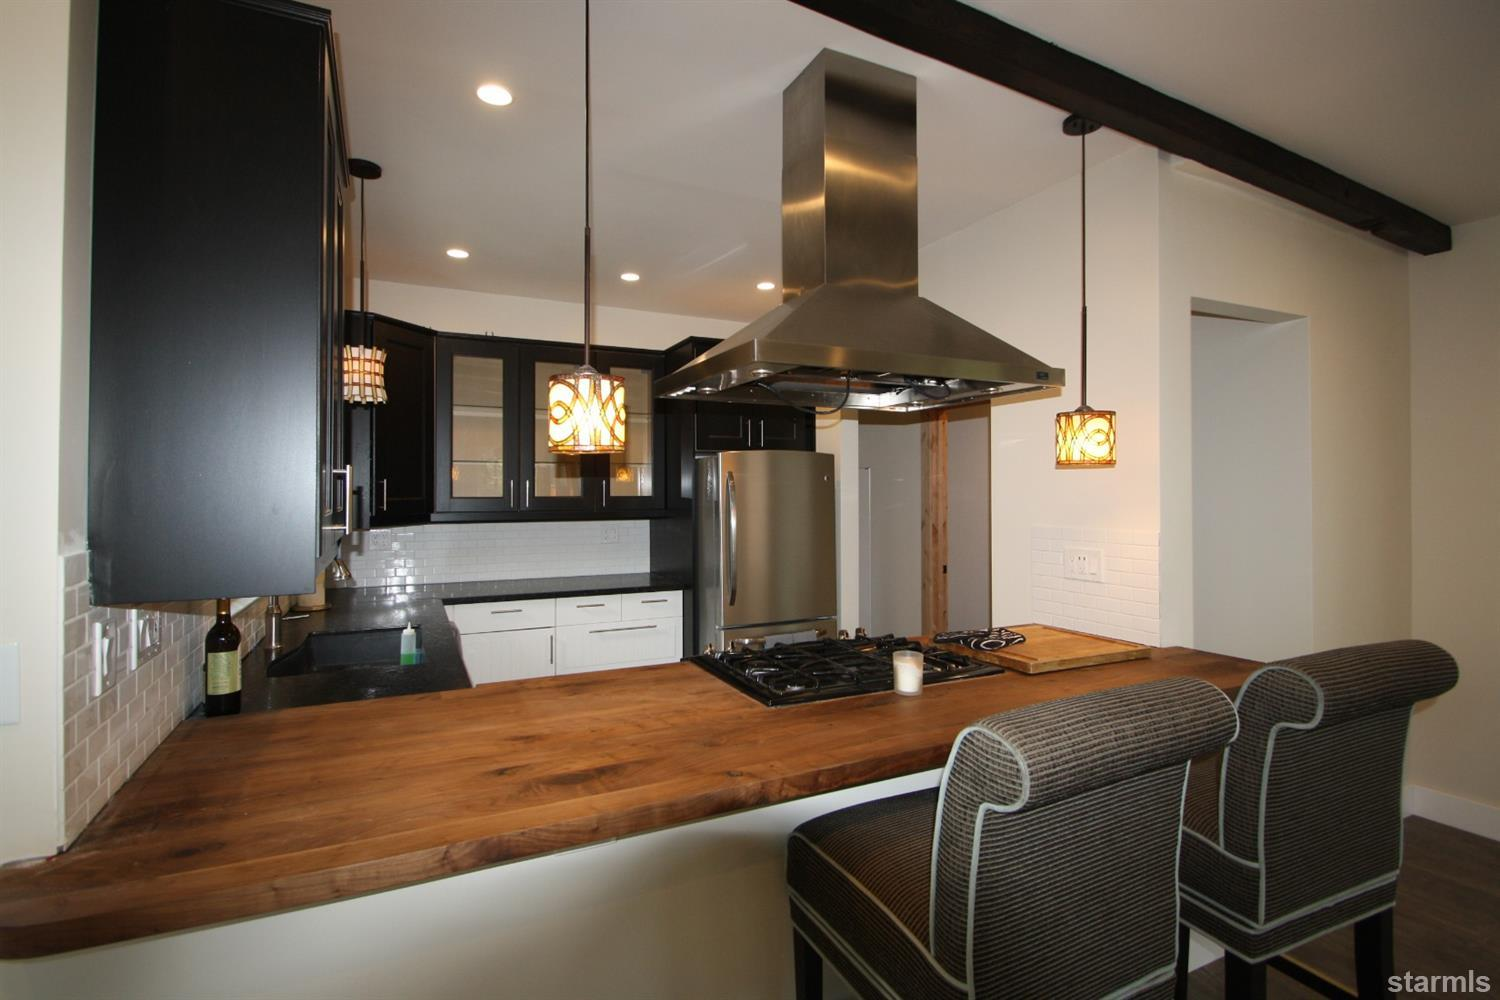 2 Bed Bath Residential For In South Lake Tahoe